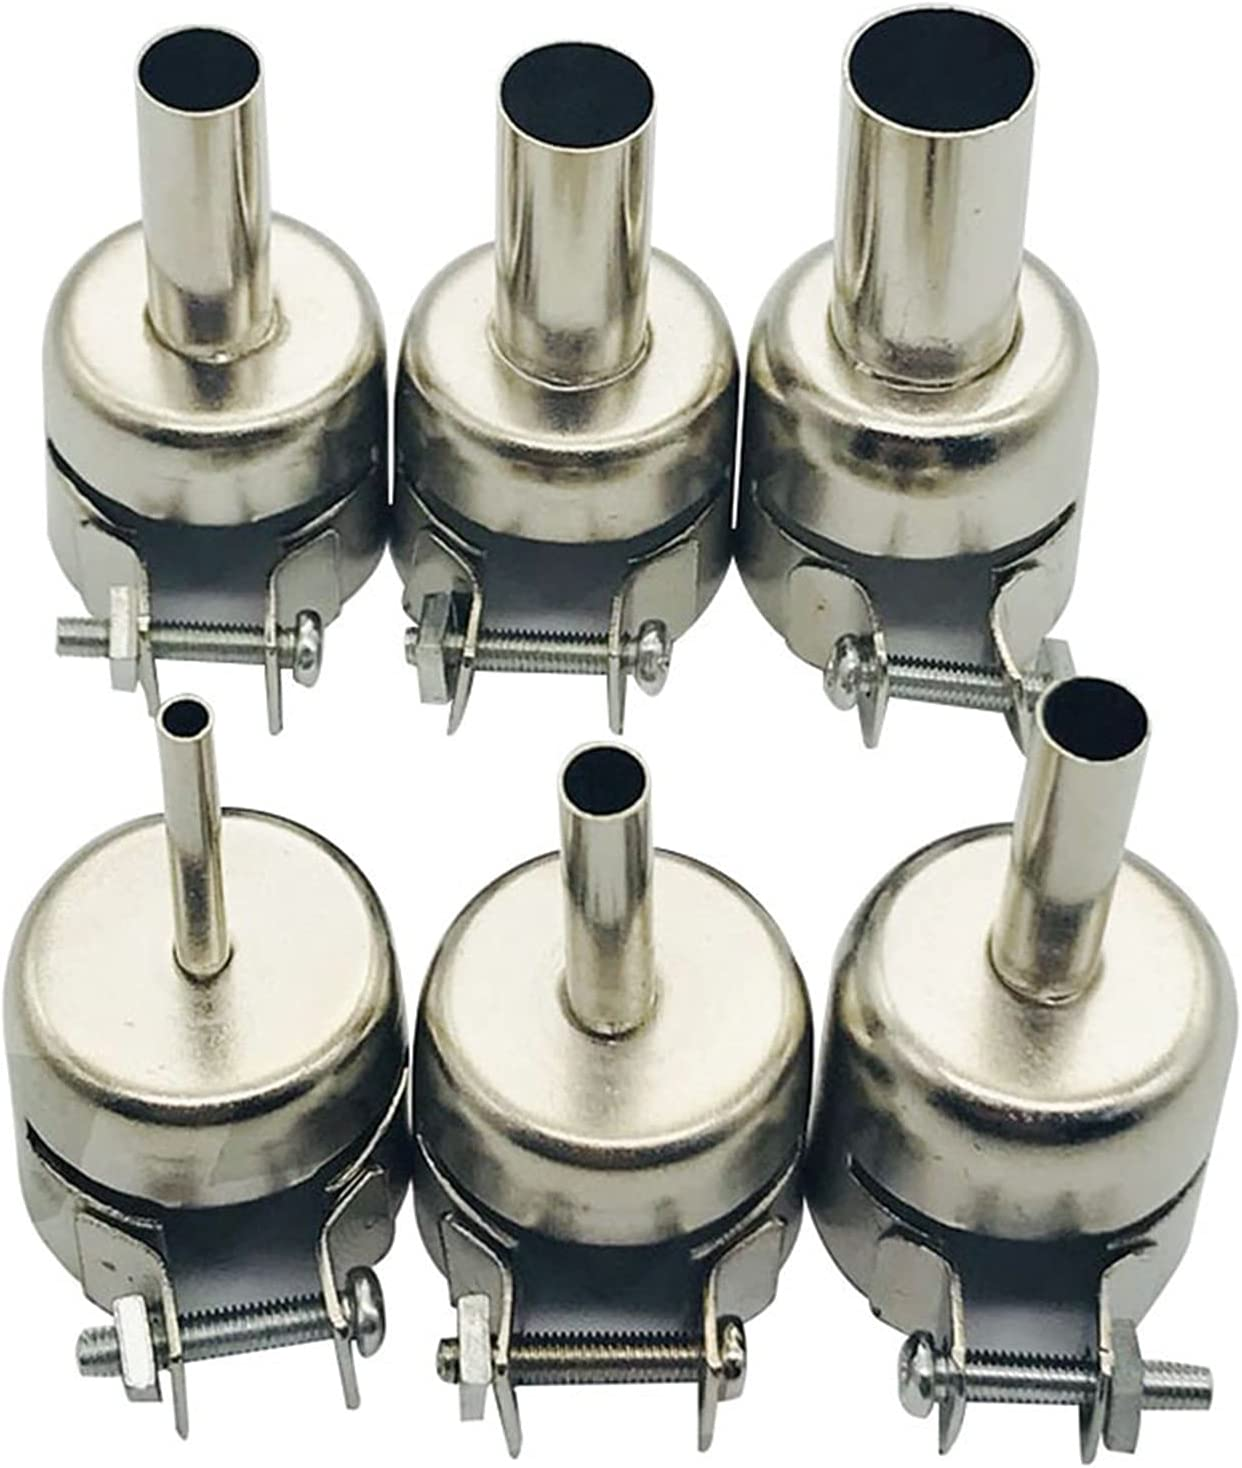 LJWXX Welding Nozzle 1PCS Stee 3-12MM Universal Stainless Max 80% Translated OFF